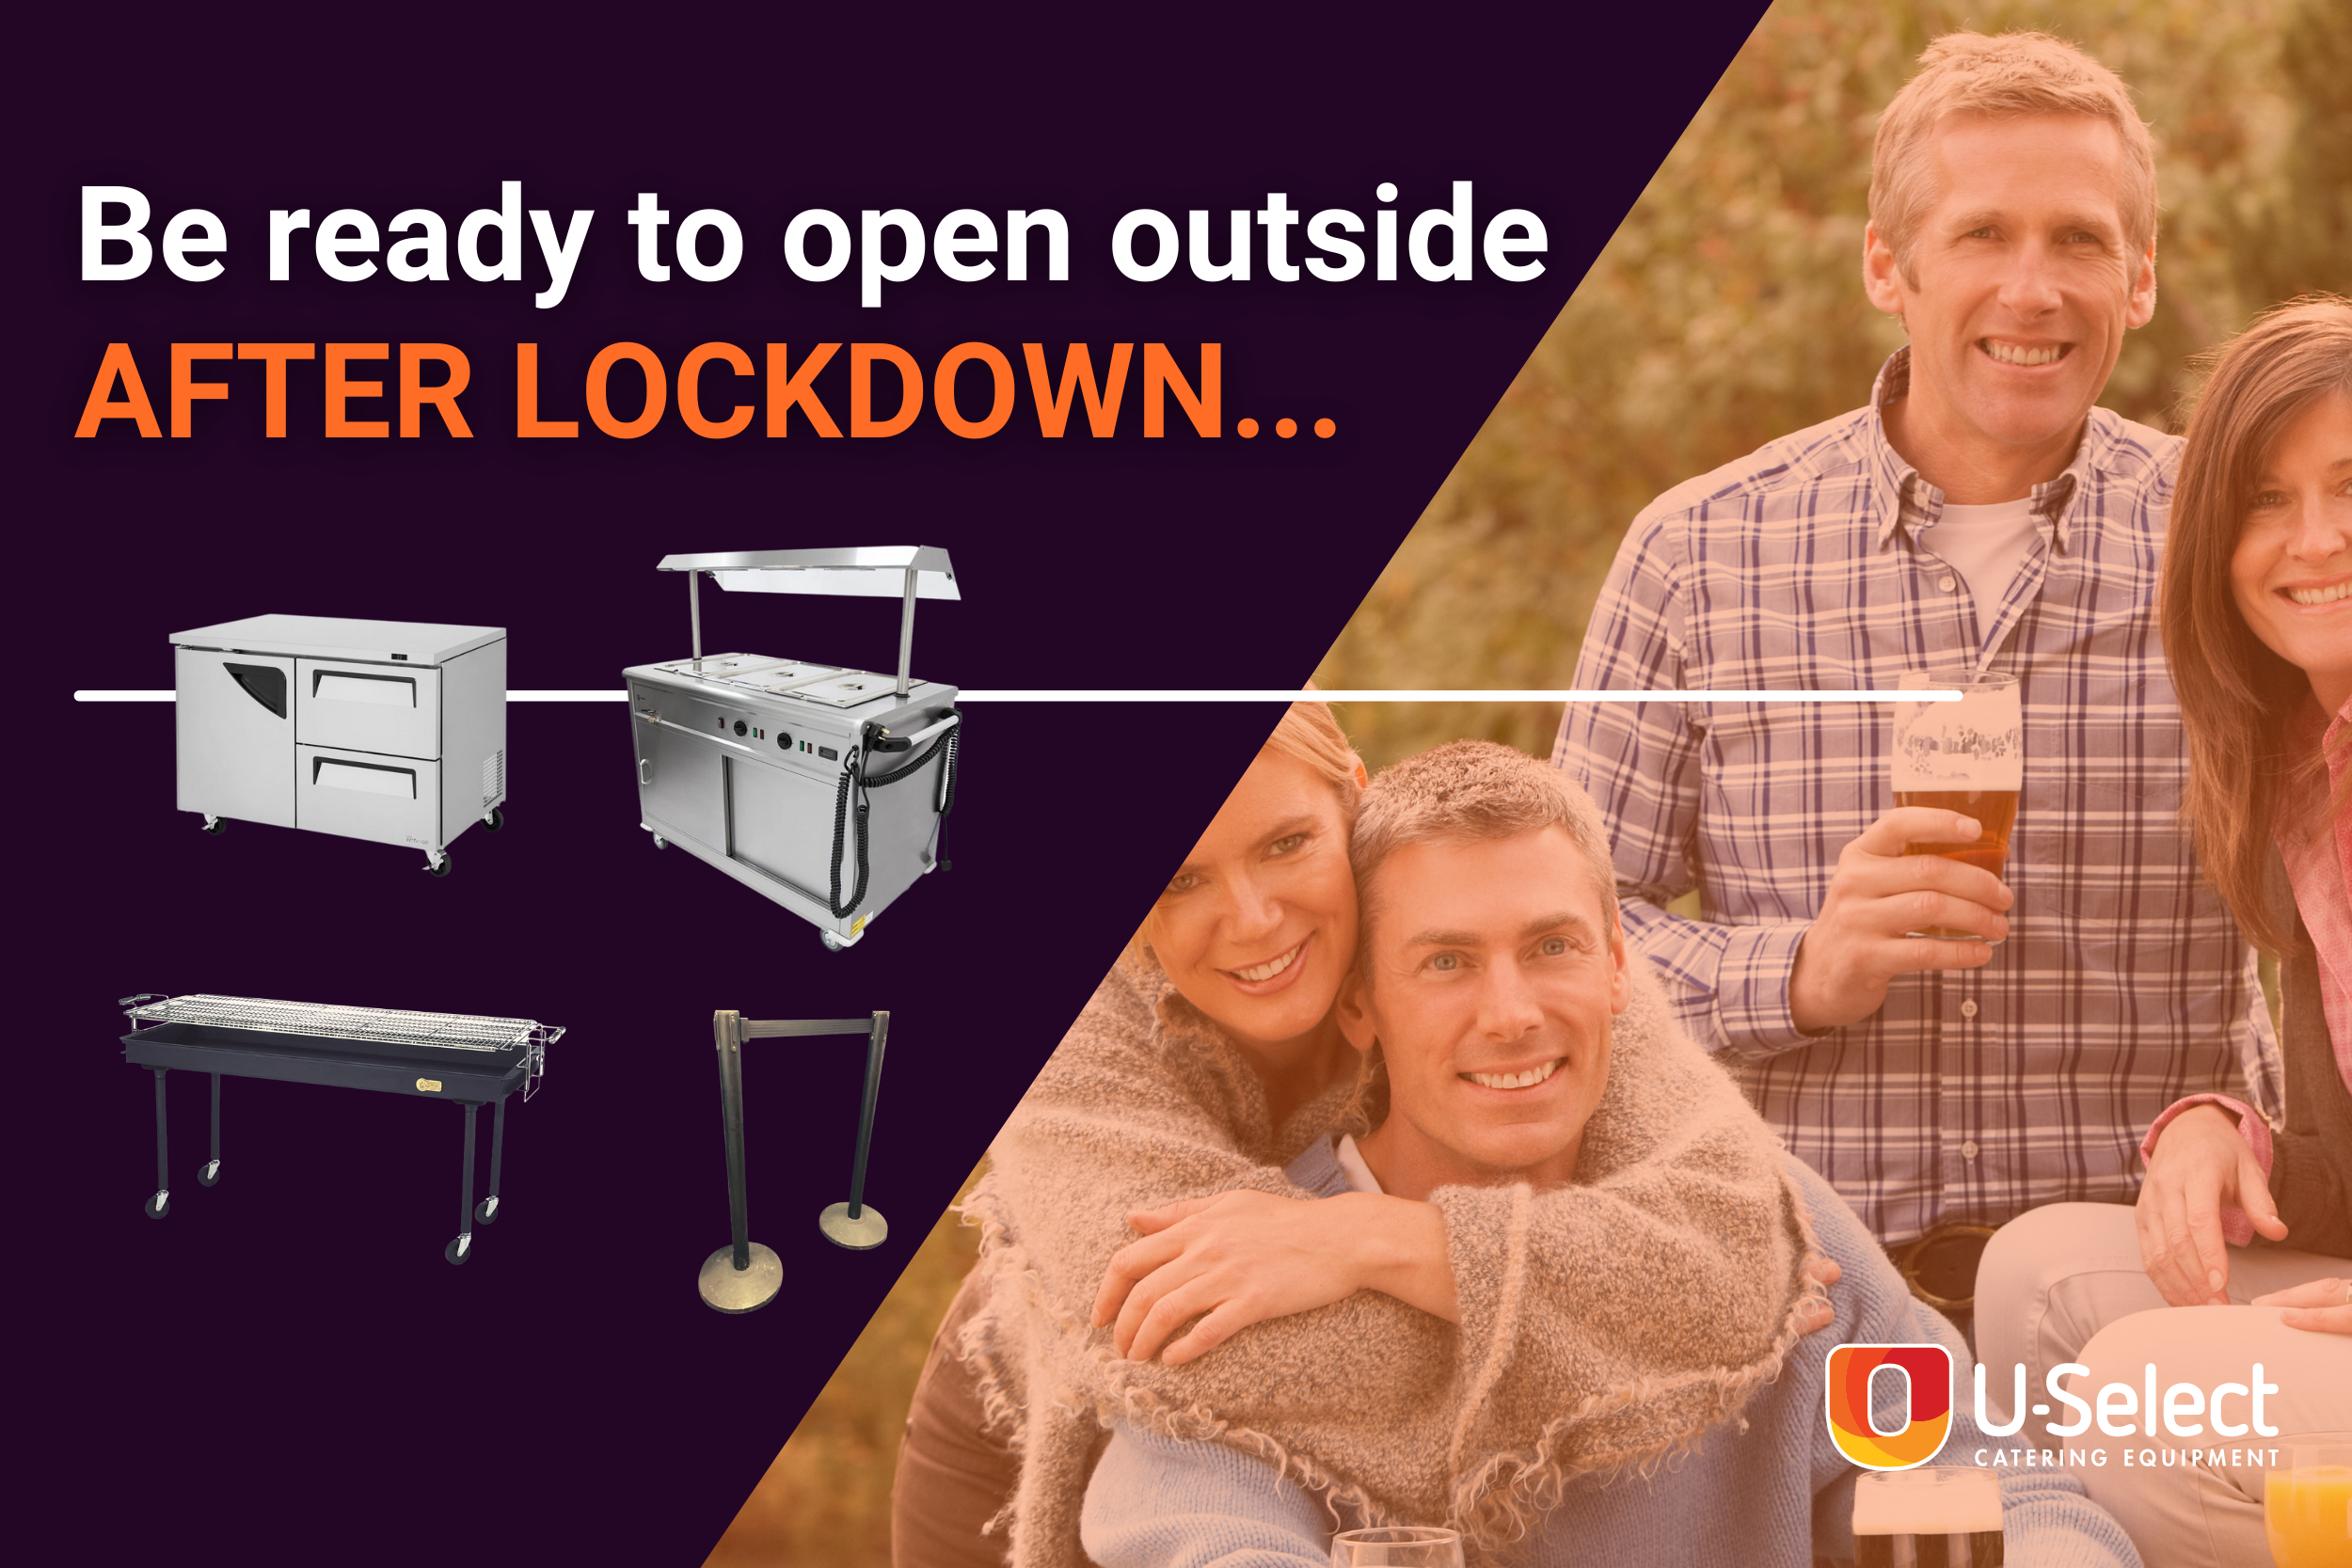 Be Ready to Open Outside After Lockdown on April 12th with this equipment